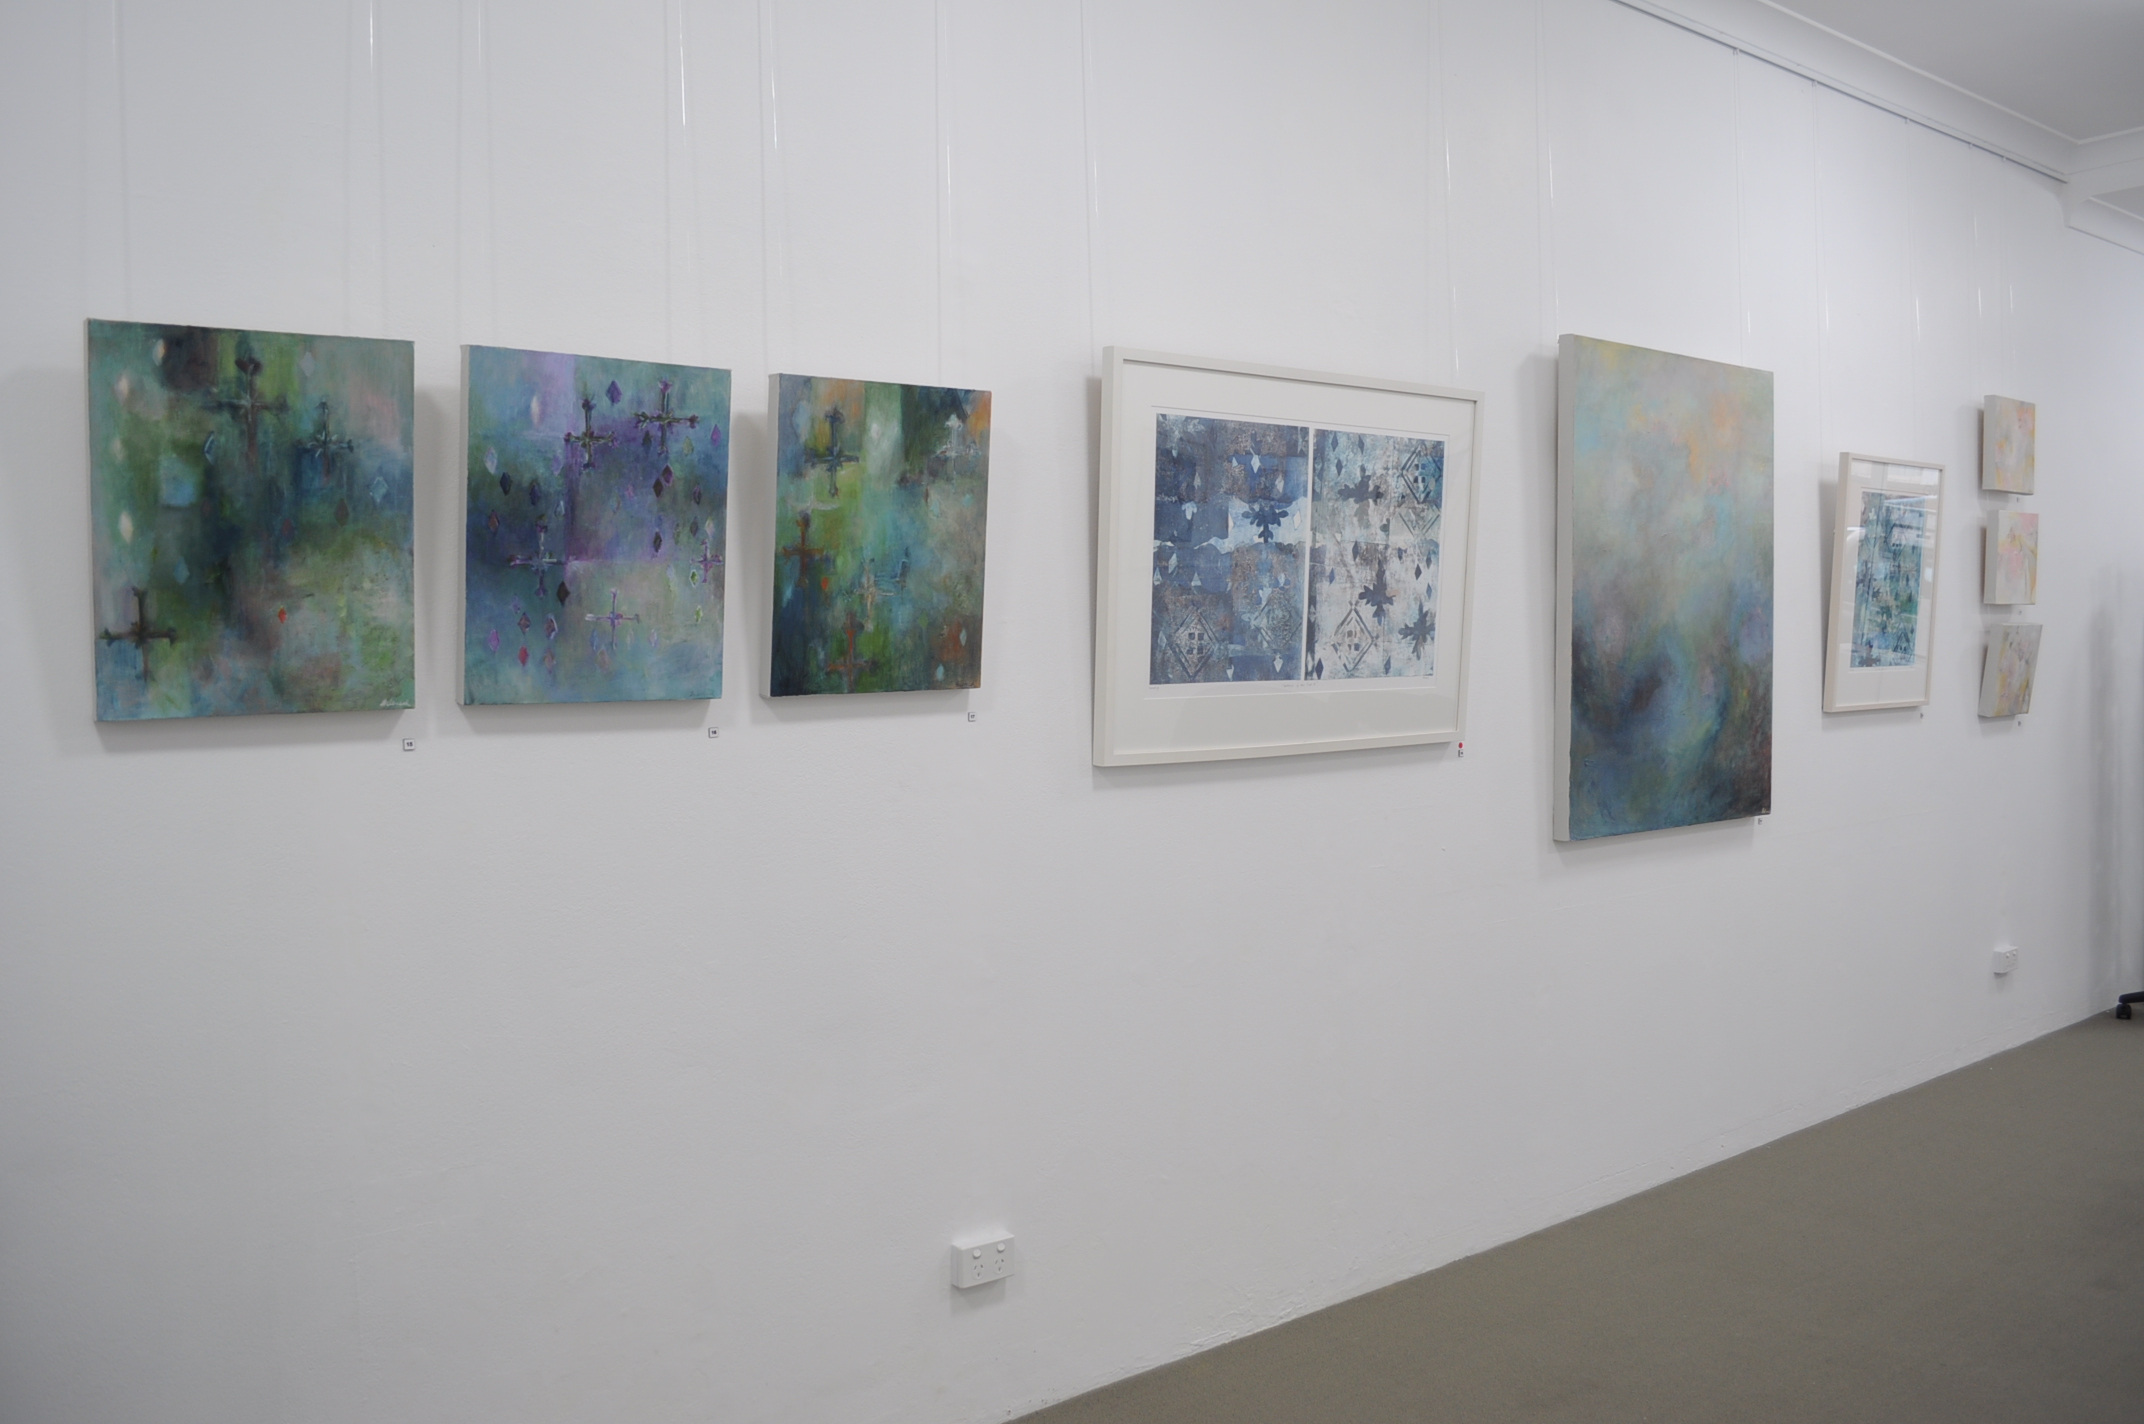 installation view - side wall